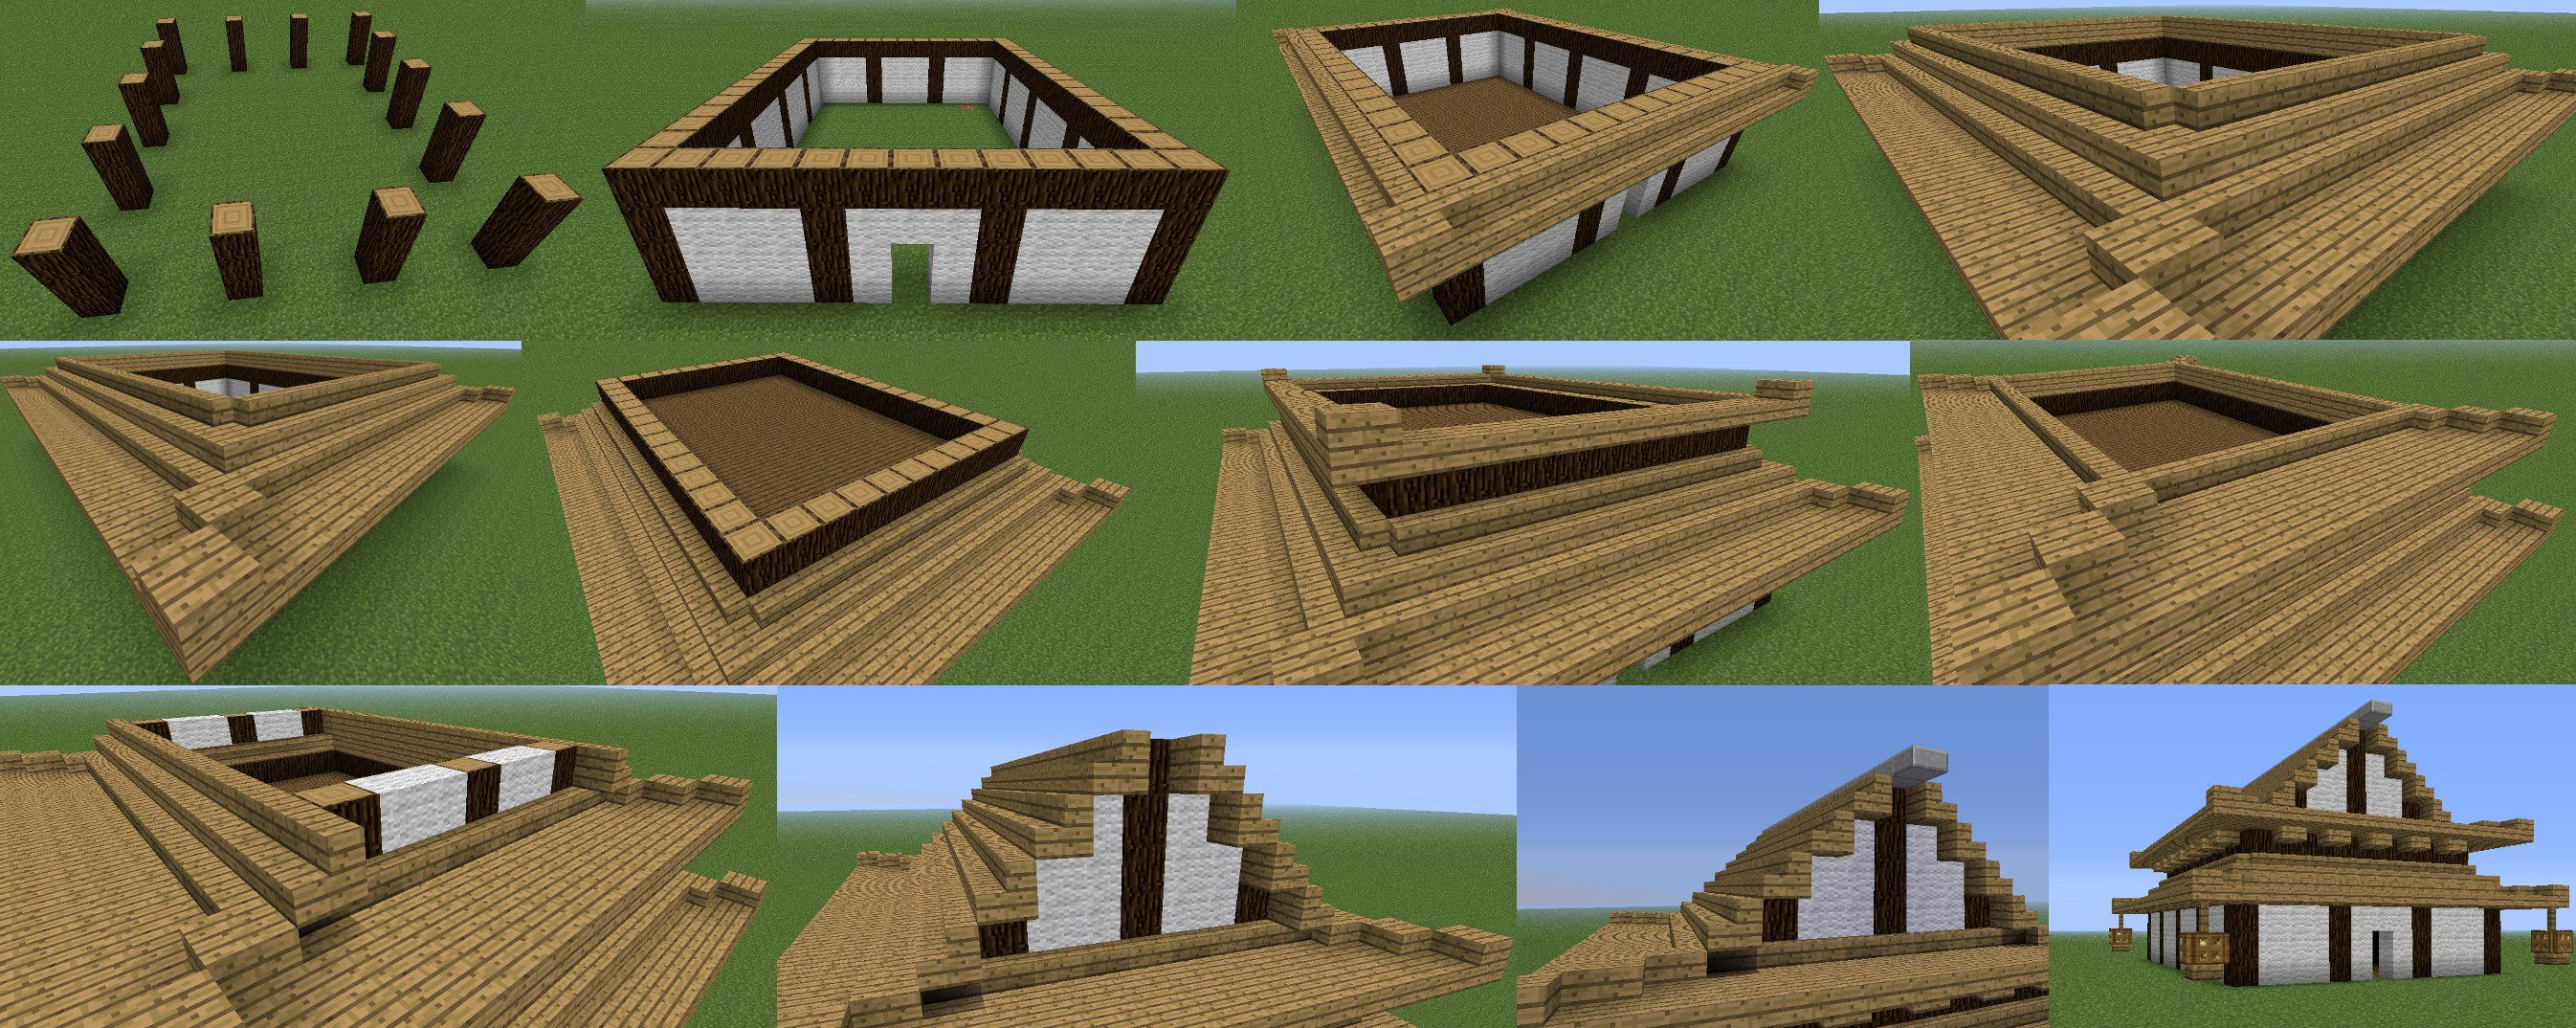 Japanese building style in minecraft minecraft guides for How to build a house step by step instructions